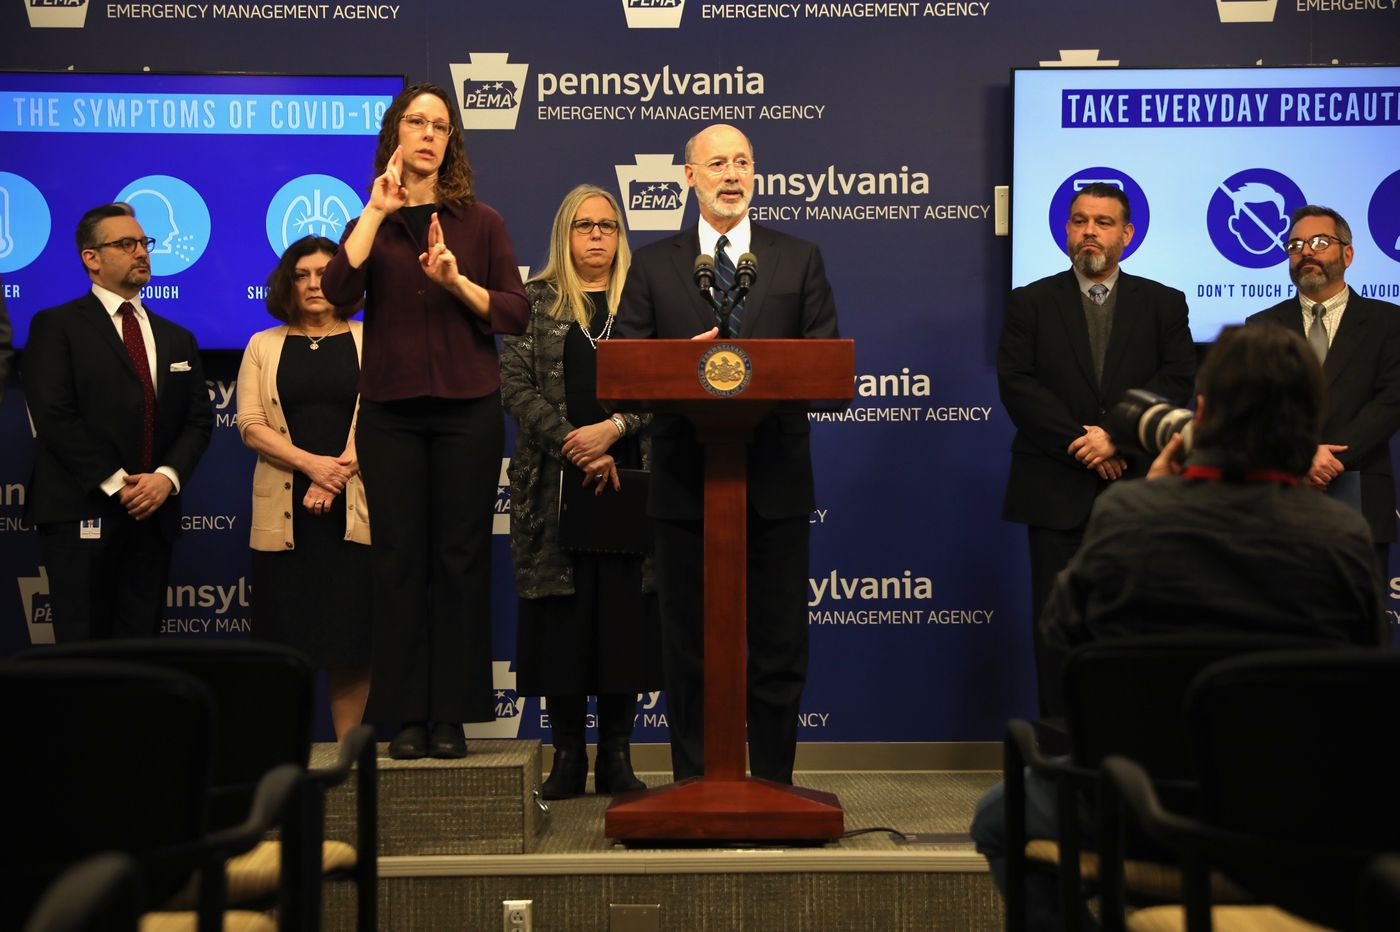 Coronavirus cases identified in Delaware County and South Jersey, and Gov. Wolf urges calm